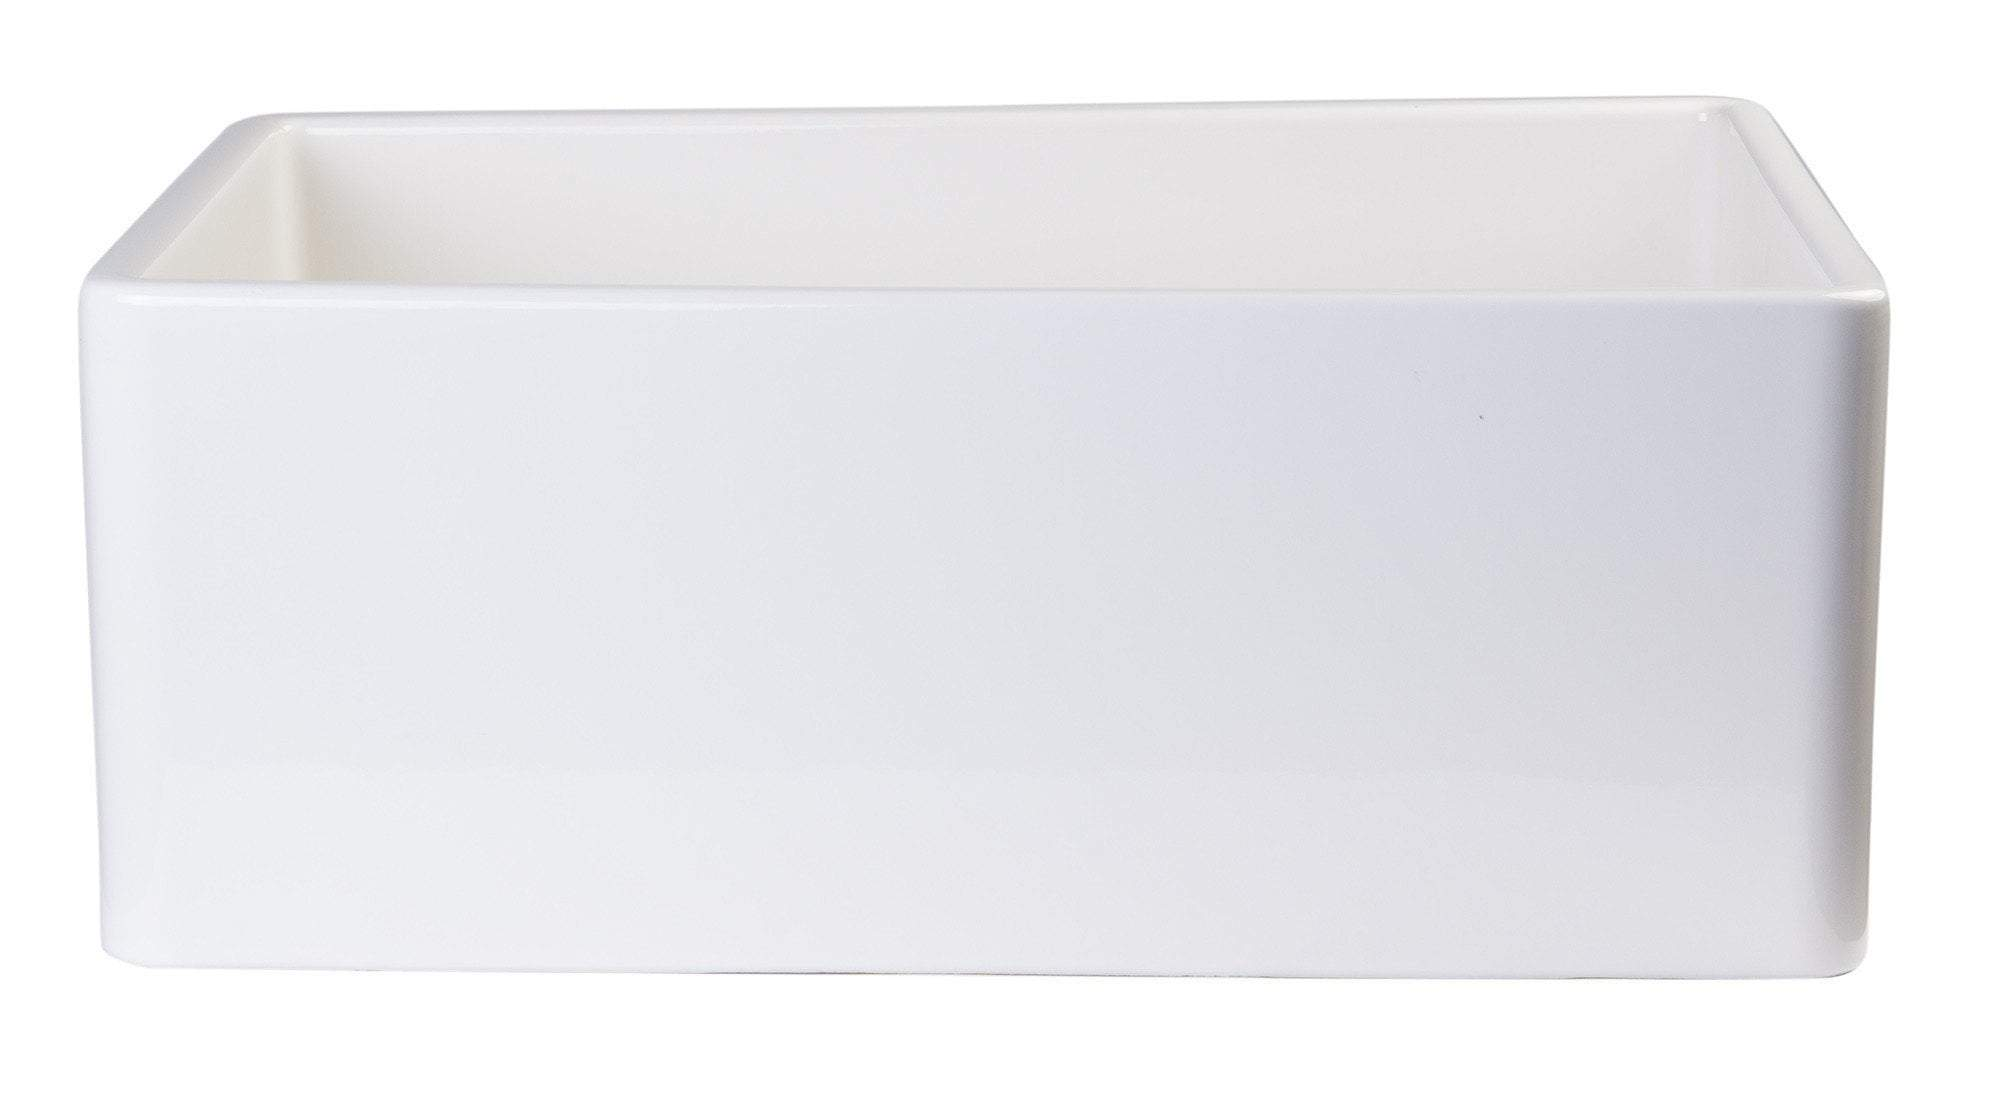 alfi biscuit 26 contemporary smooth fireclay farmhouse kitchen sink ab505 b